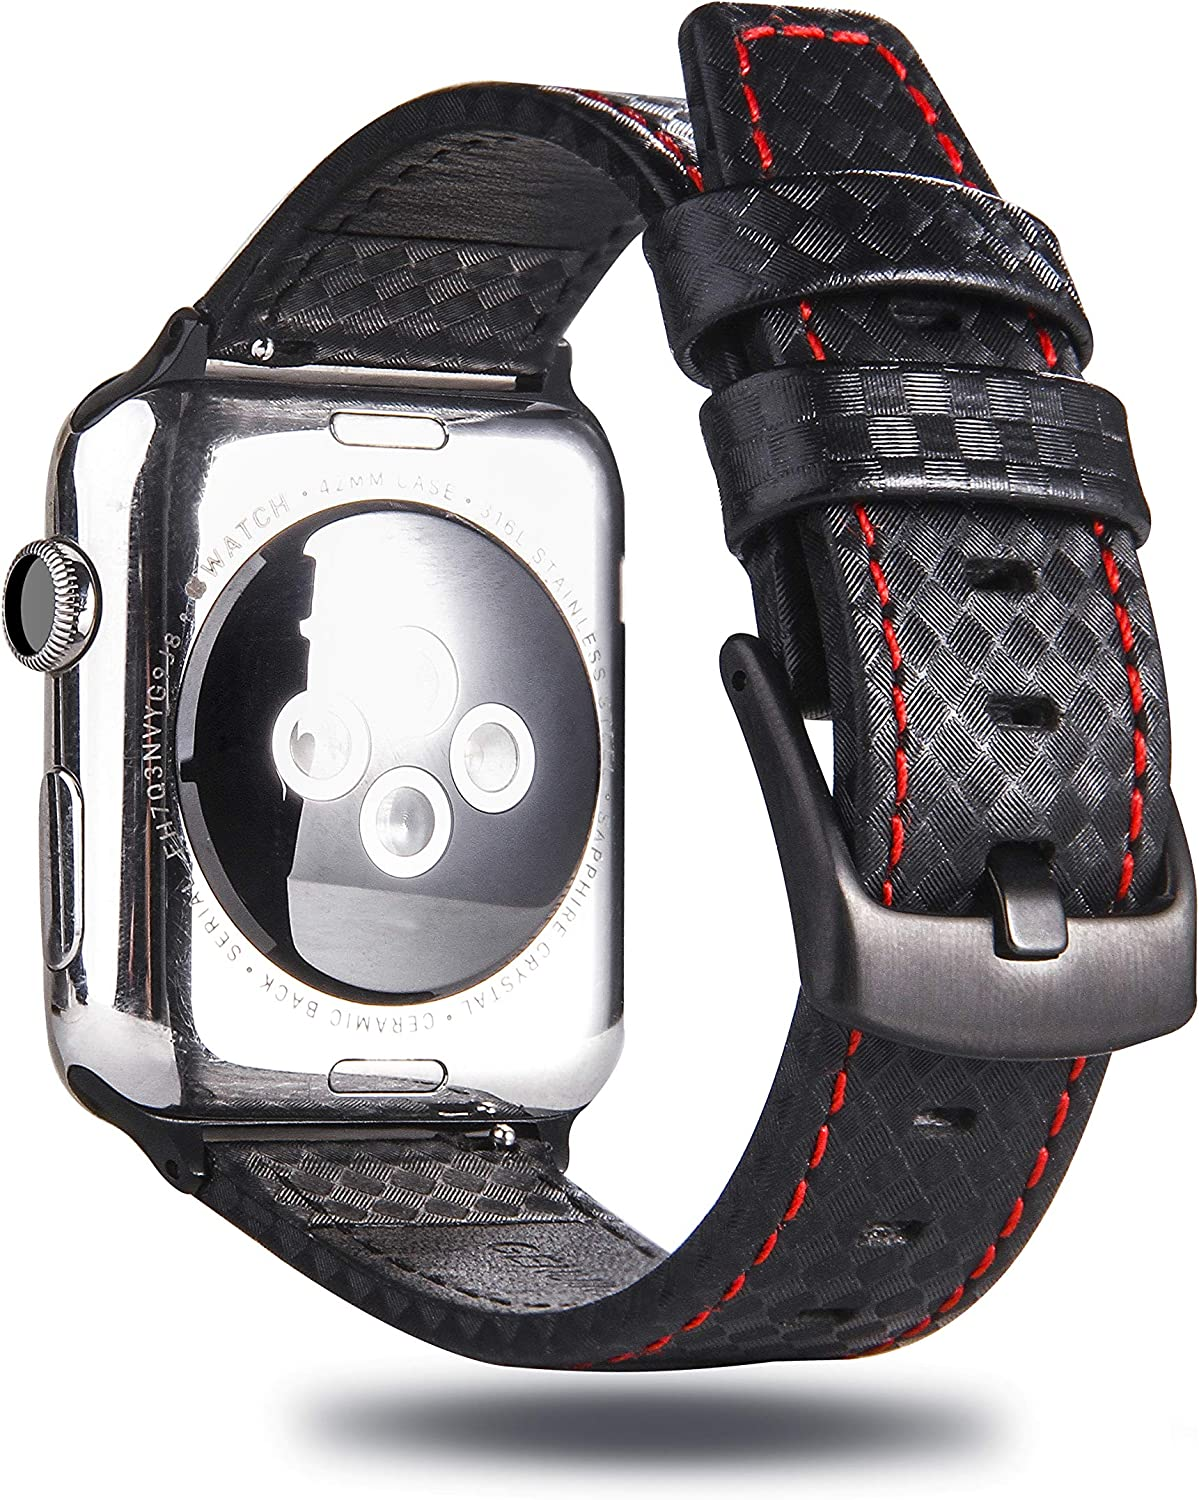 MeShow TCSHOW 44mm 42mm Genuine Leather Carbon Fiber Embossed Pattern with Red Stitching Strap Wrist Band with Secure Metal Clasp Buckle Compatible for Apple Watch Series 5/4(44mm)/Series 3/2/1(42mm)